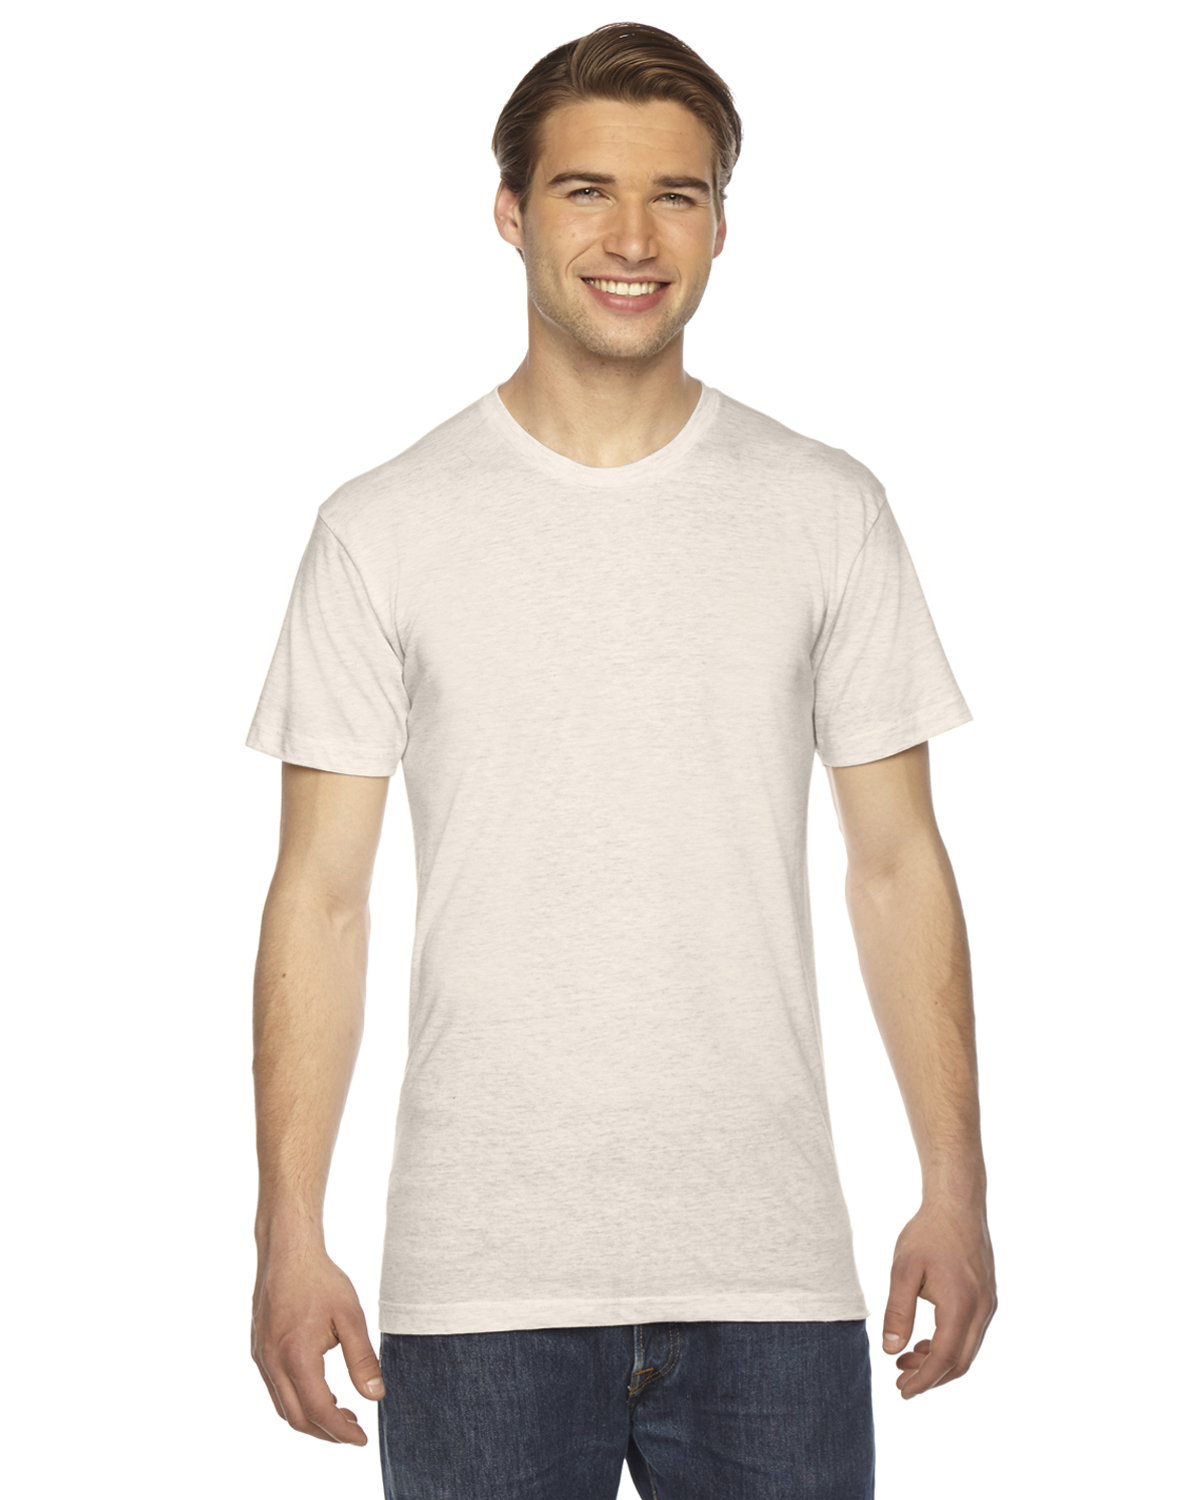 American Apparel Unisex Triblend Short-Sleeve Track T-Shirt TRI OATMEAL